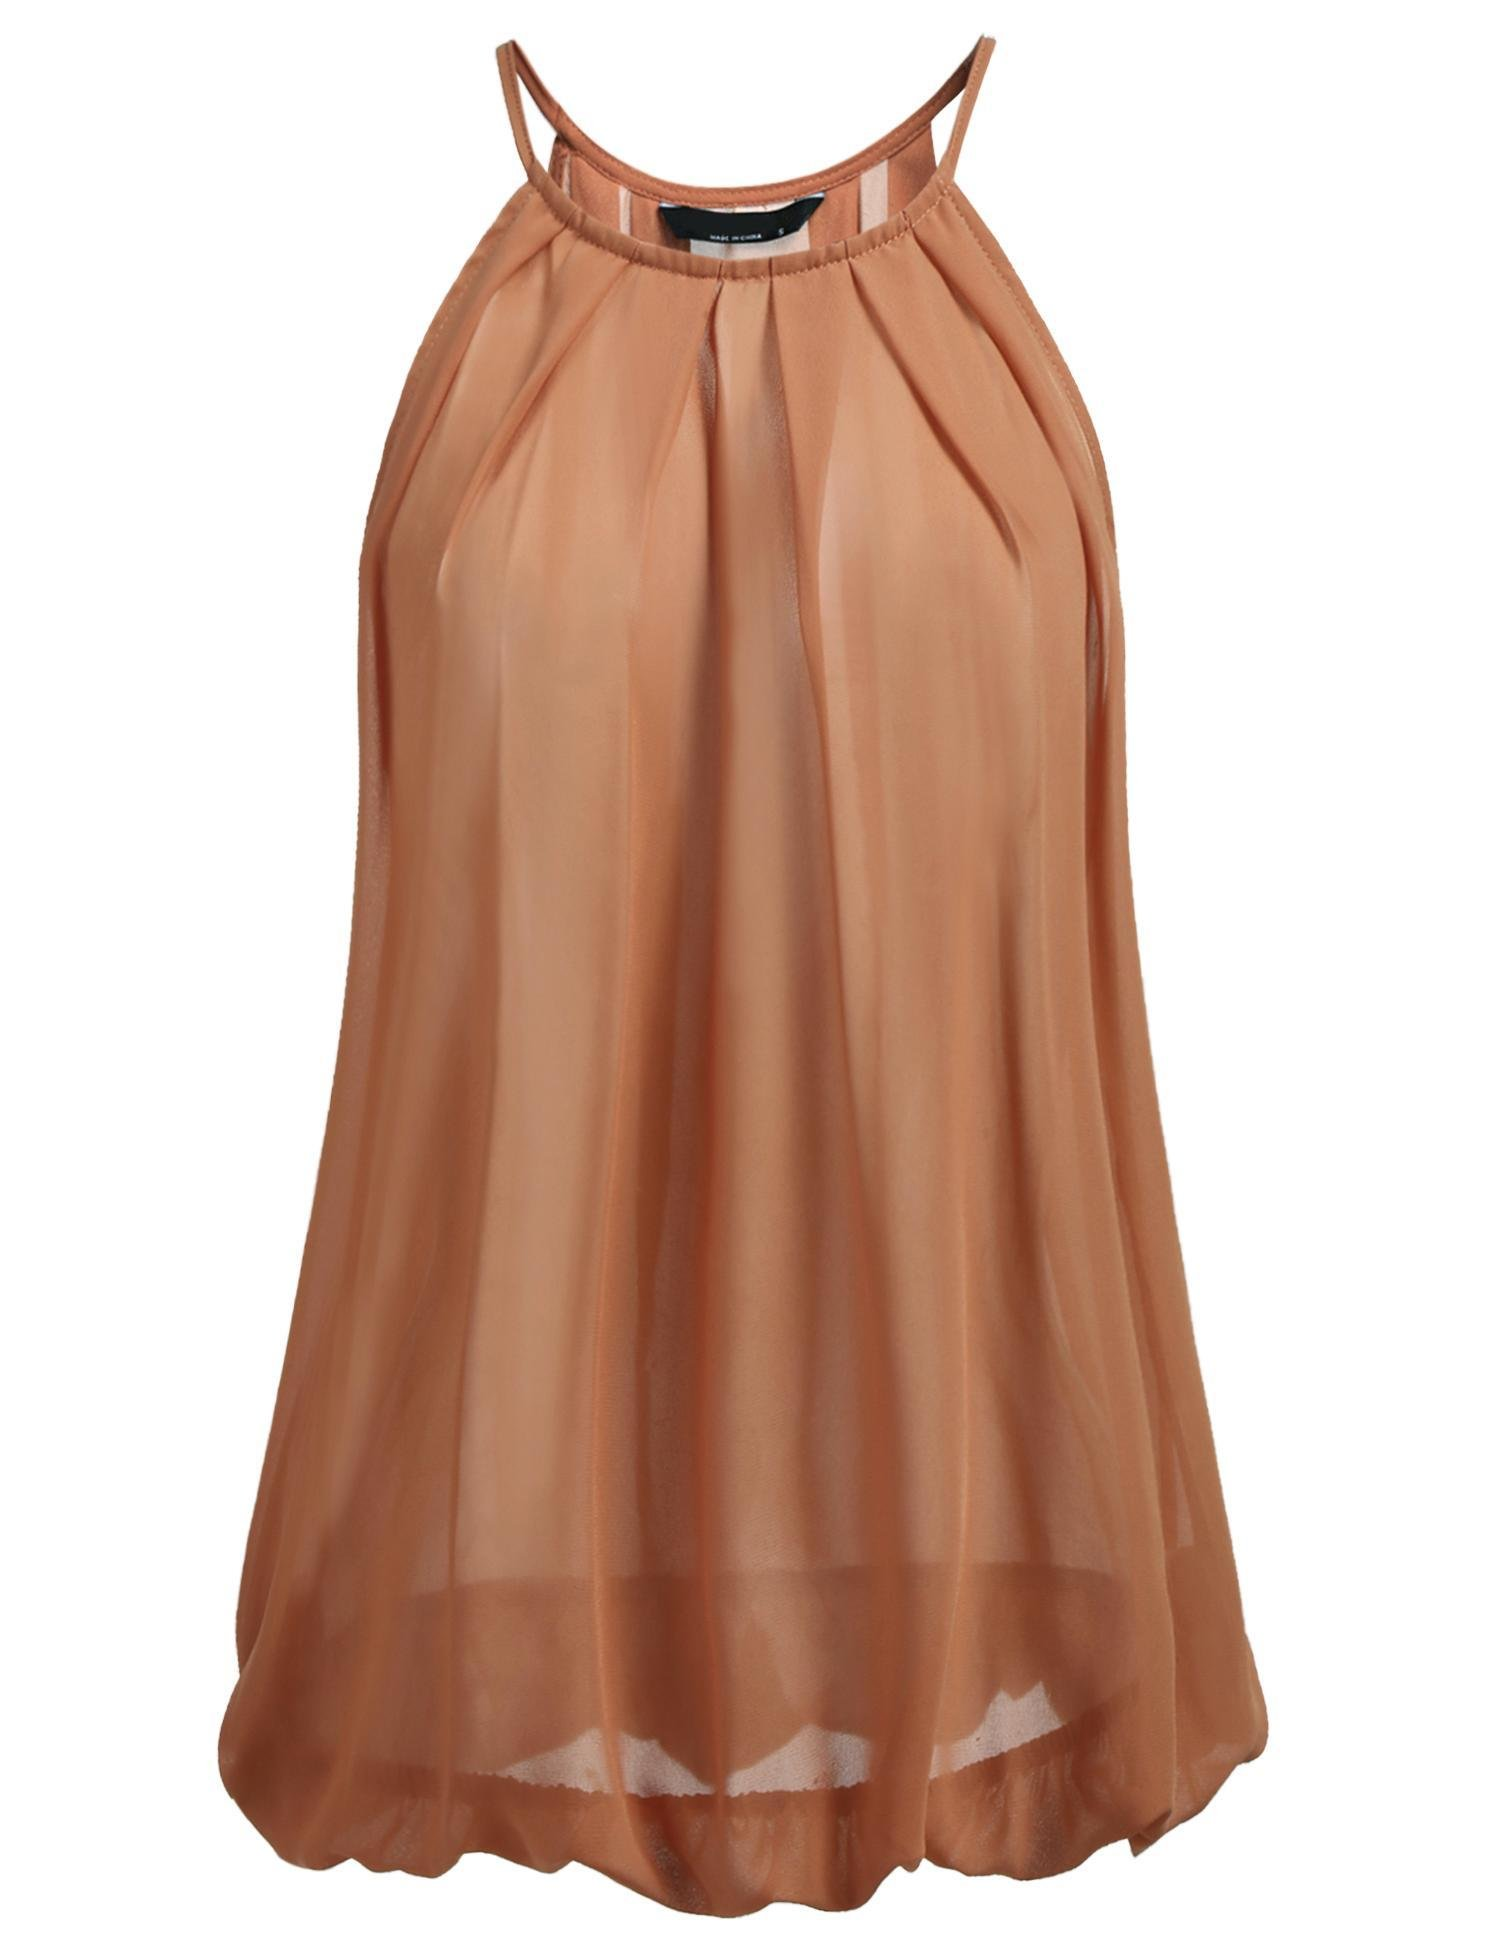 Adoeve Ladies Casual Chiffon Tank Top Pleated Sleeveless Blouse Shirt (Coffee, Large)